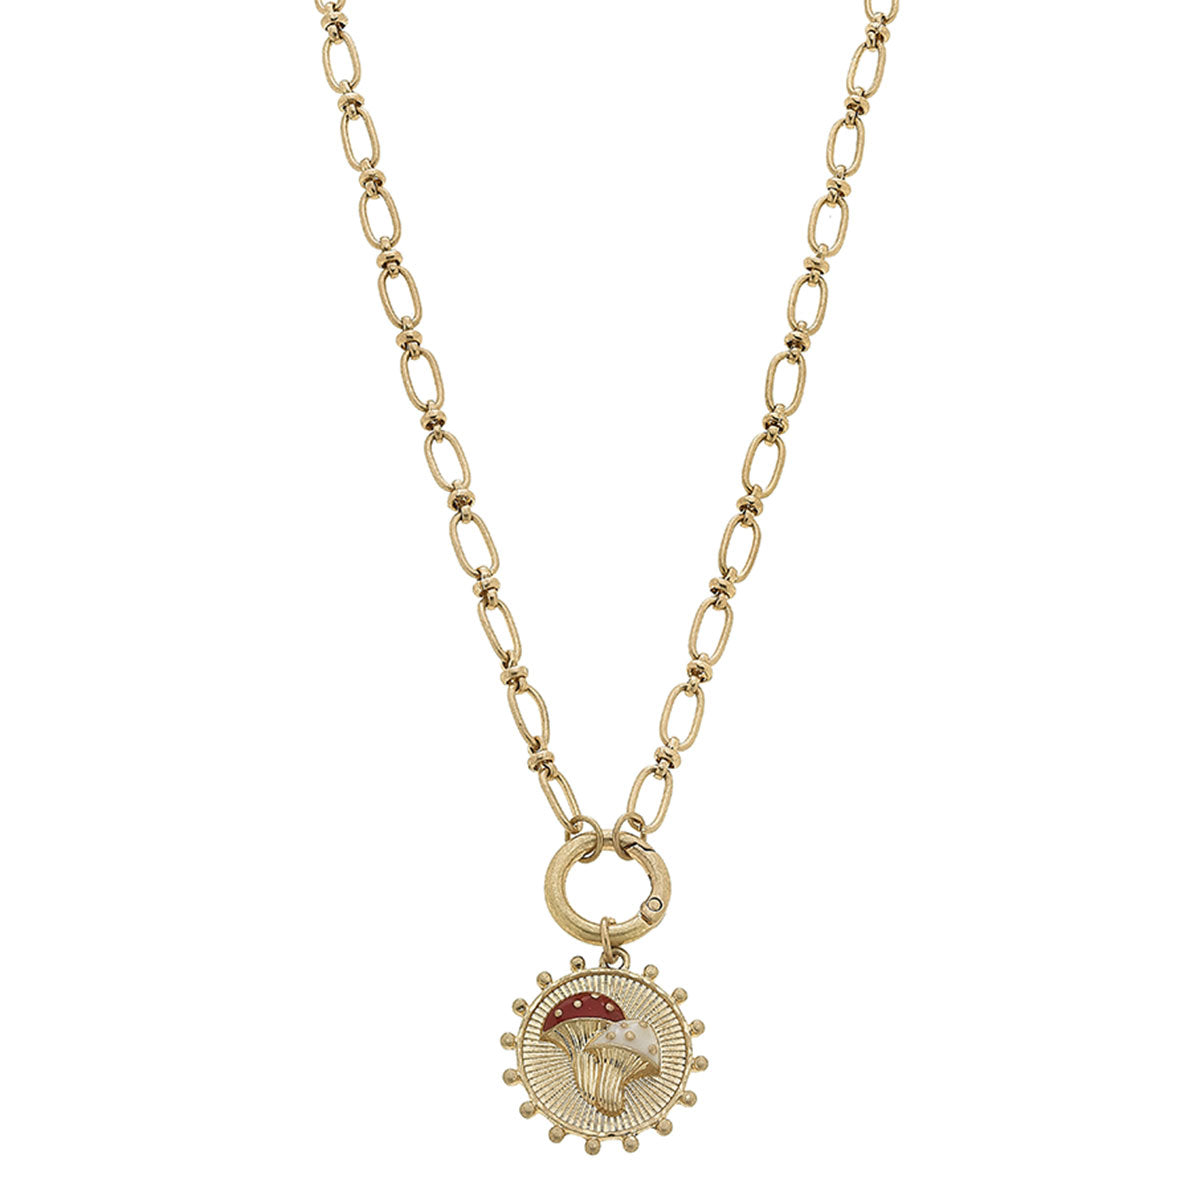 Riley Mushroom Charm Necklace in Worn Gold